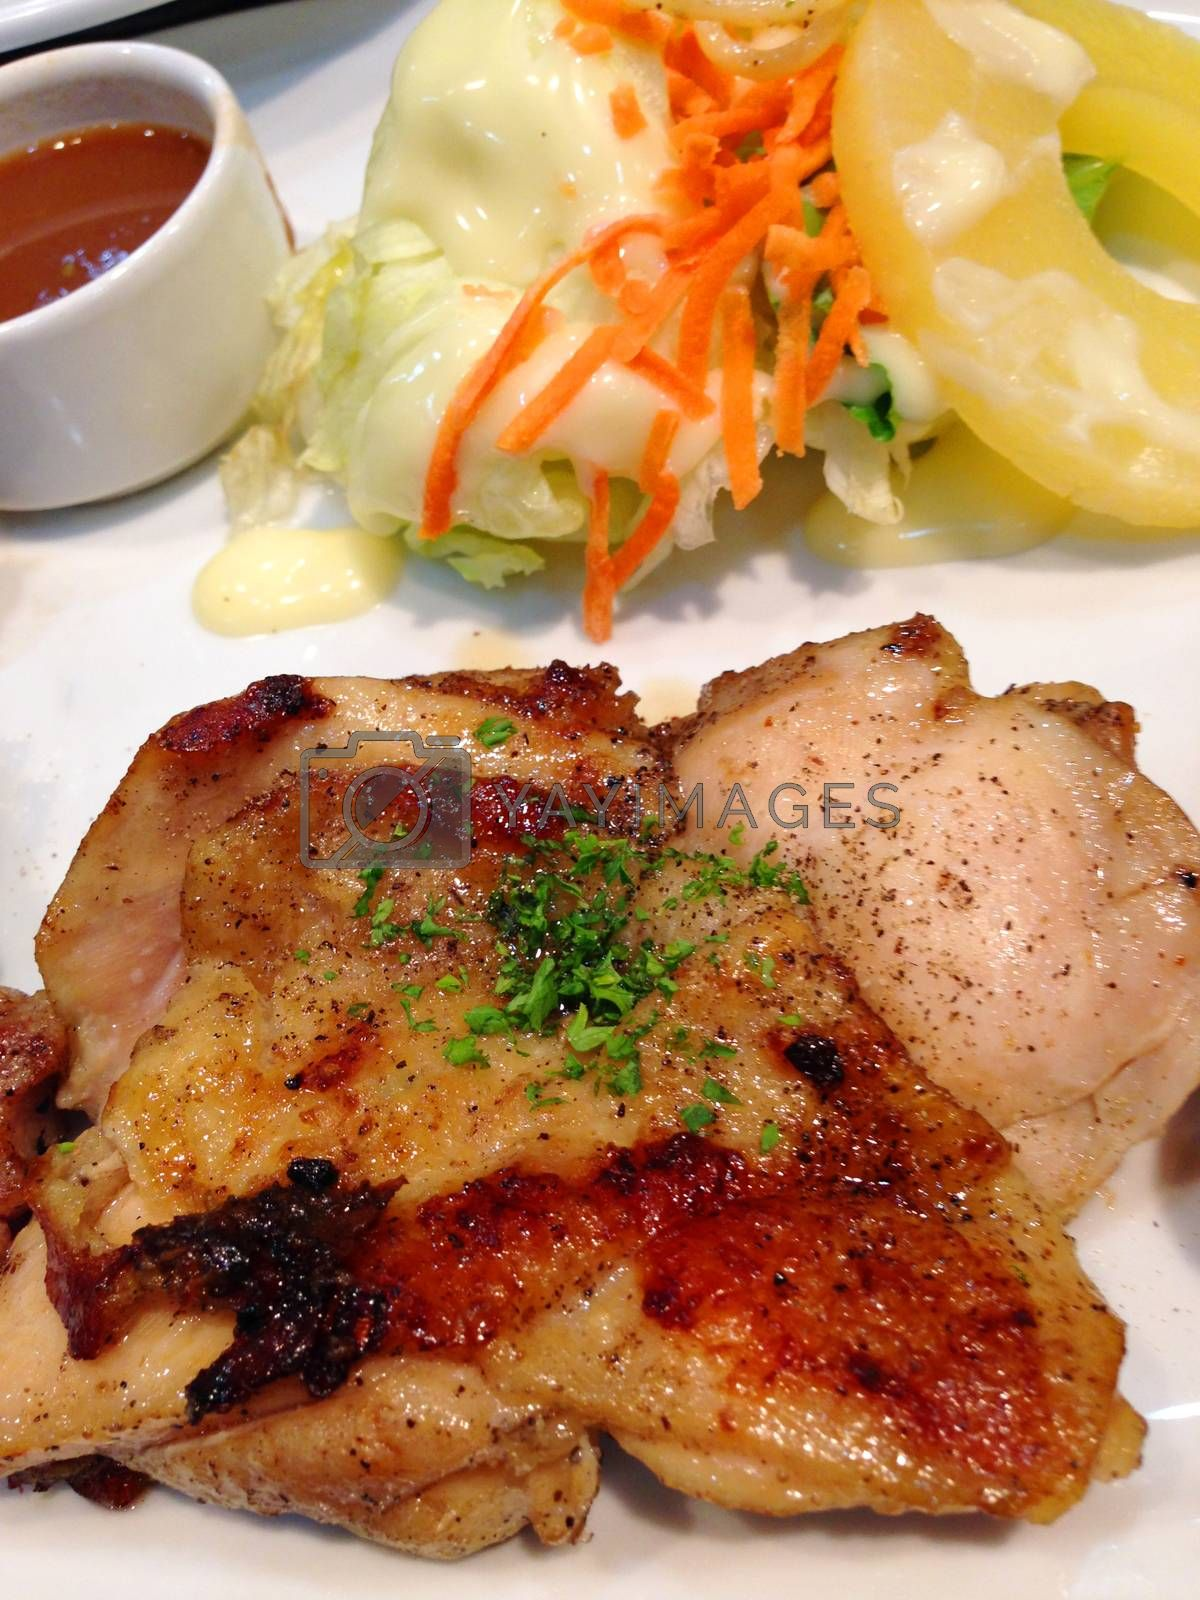 Royalty free image of the chicken steak with pepper sauce and salad by pandara